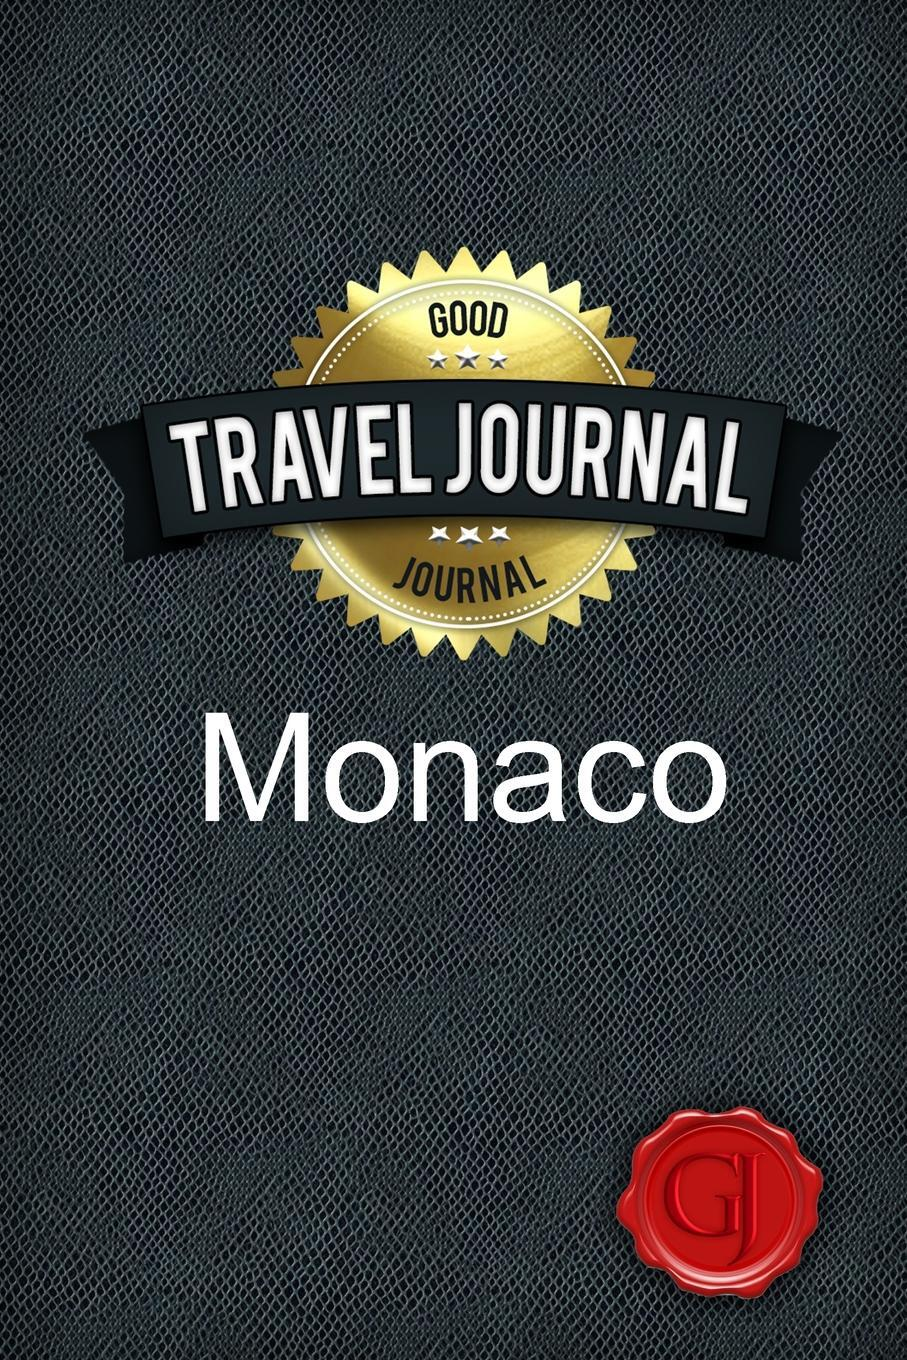 Travel Journal Monaco